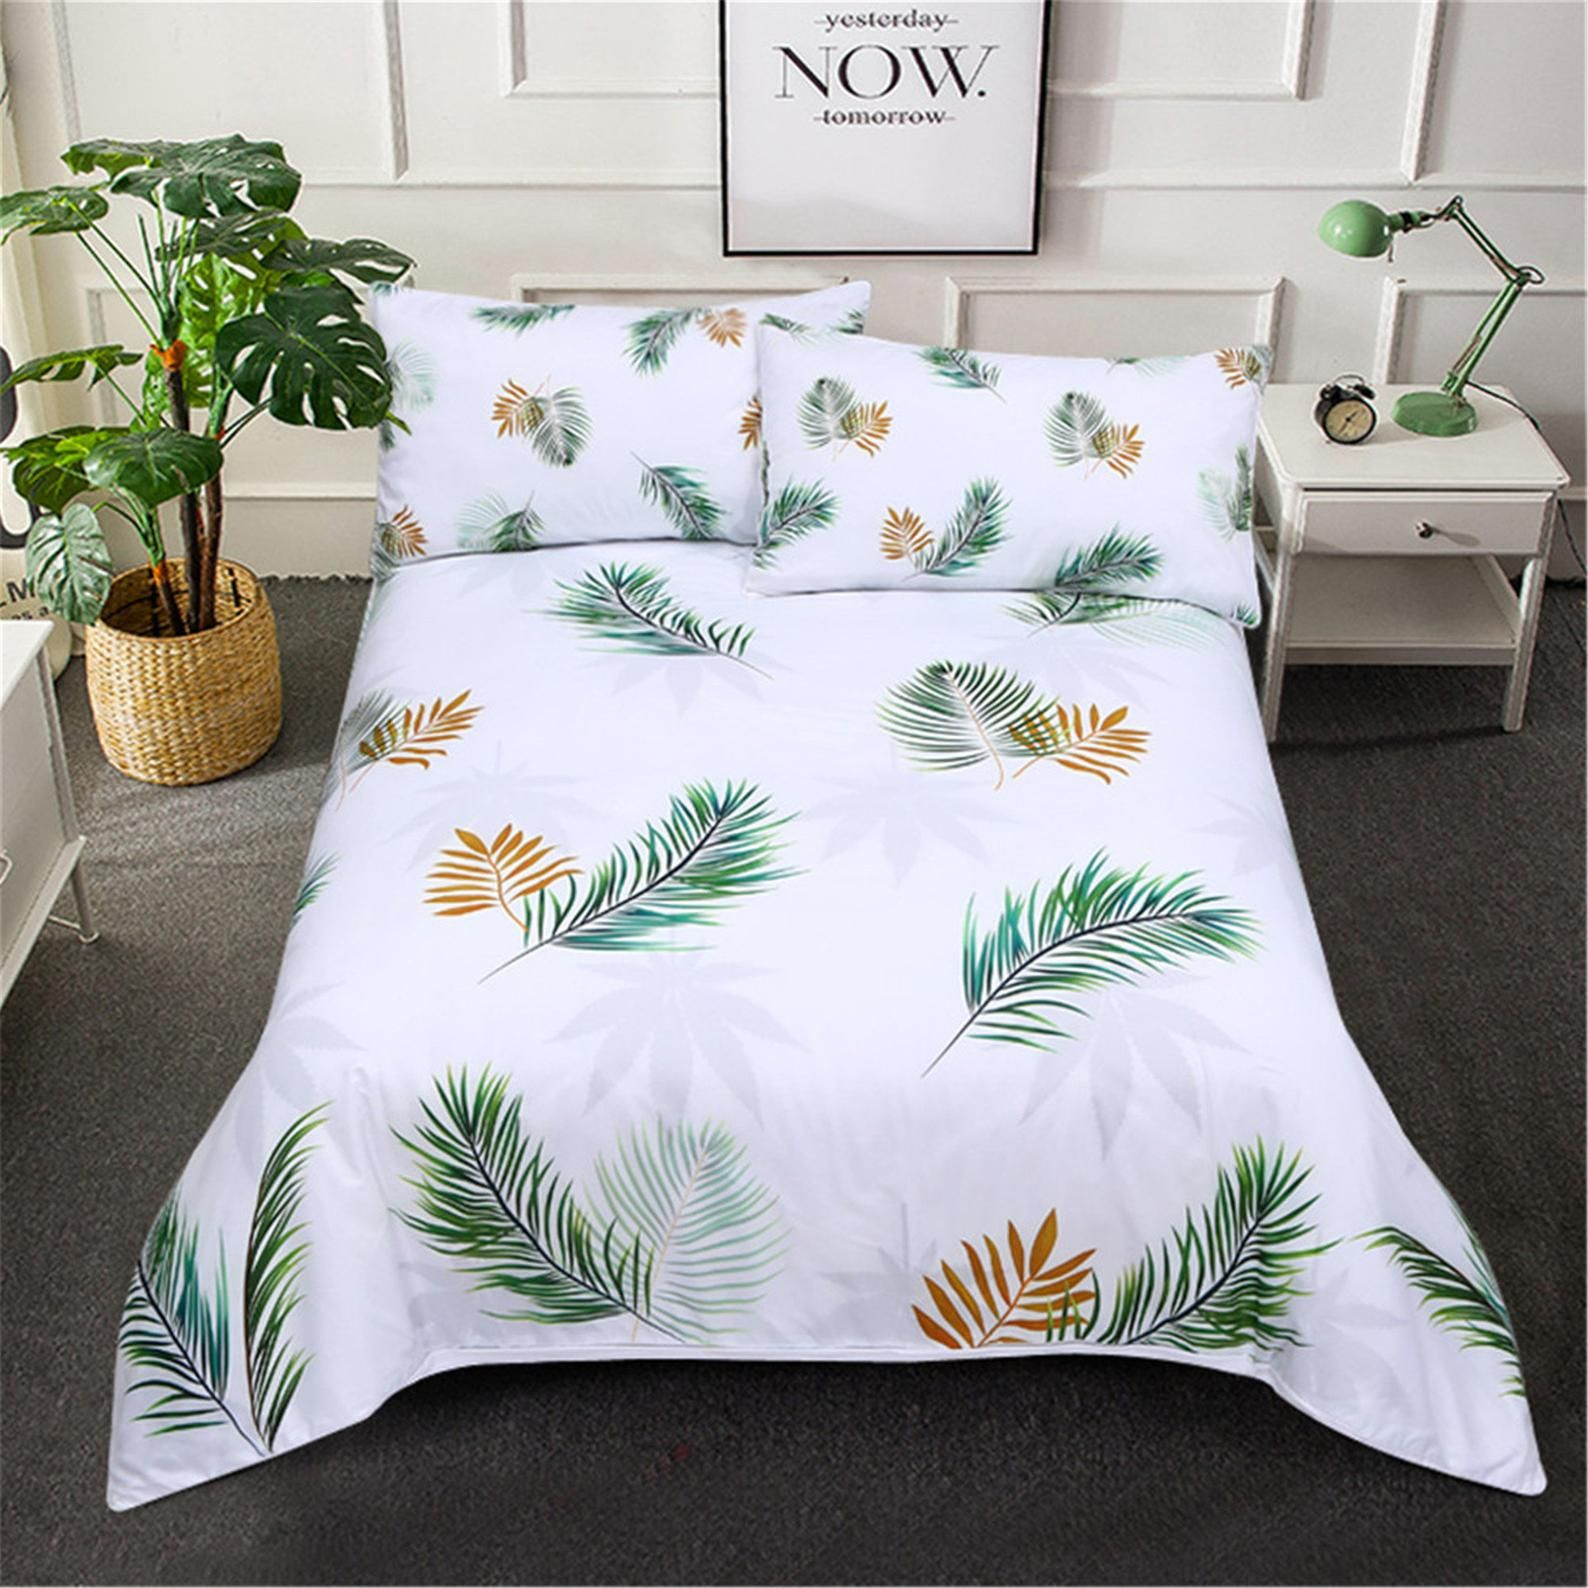 Botanical 3D Printed Duvet Cover Set, Blue and Yellow